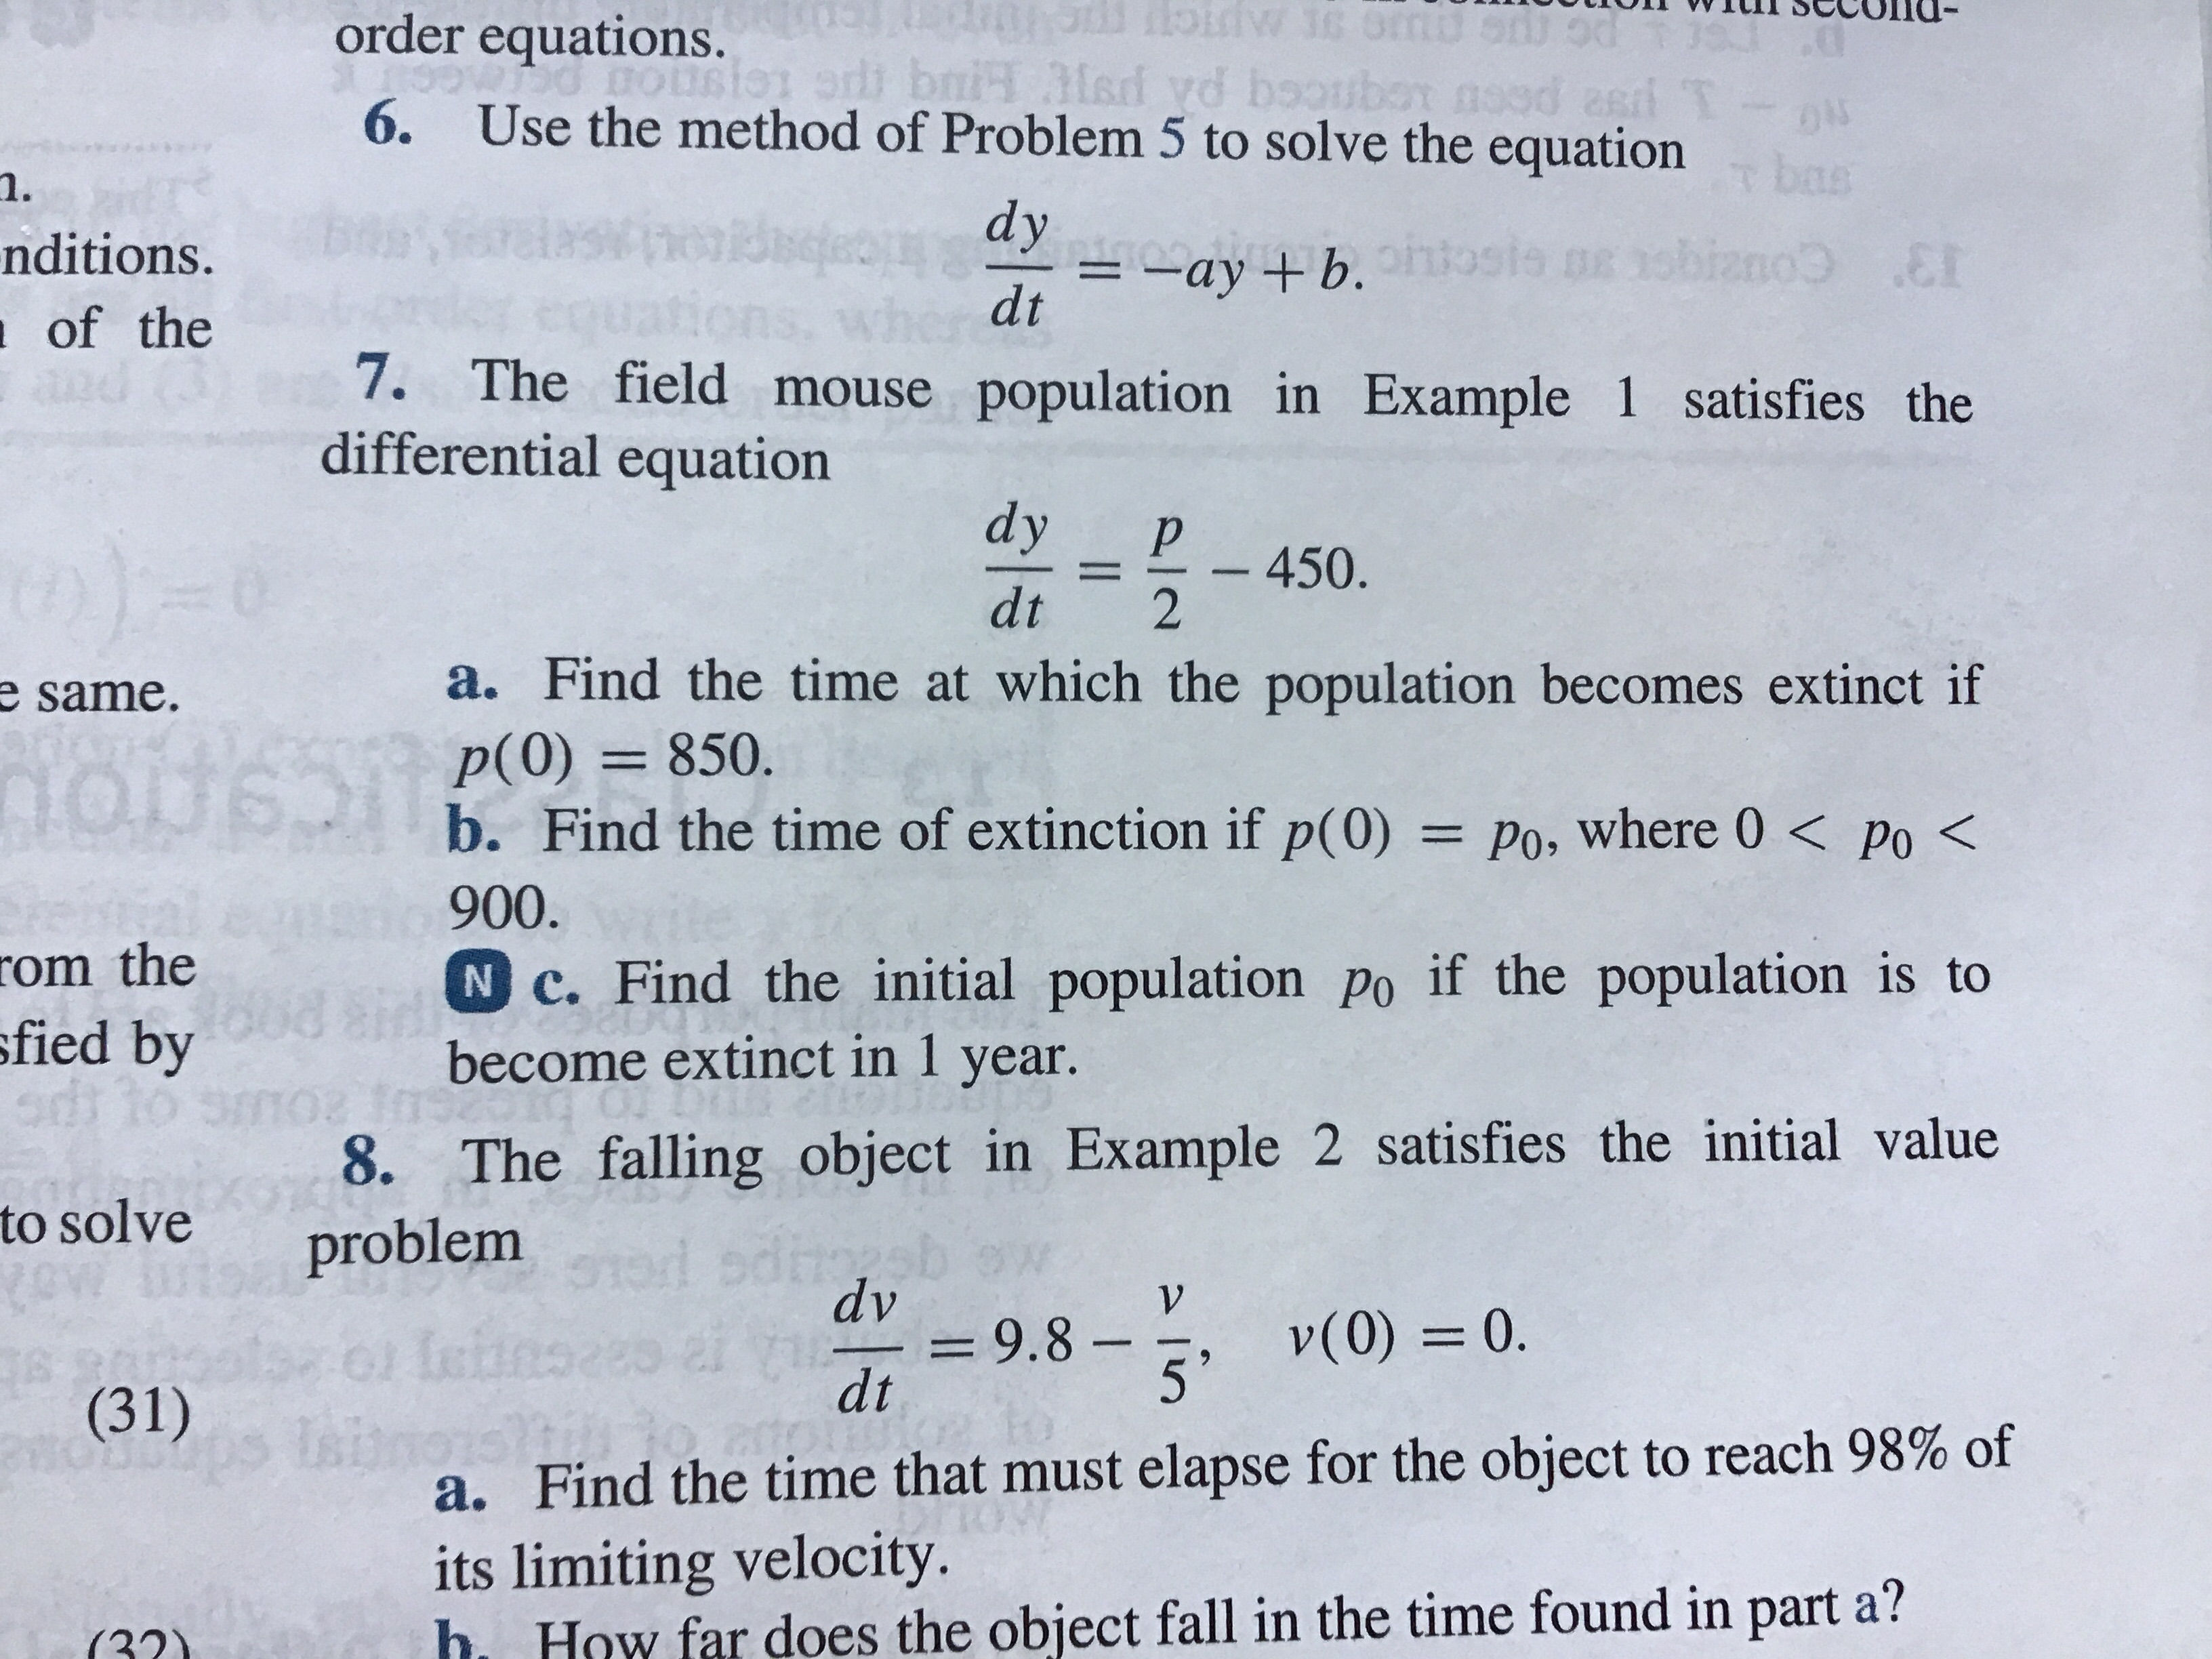 tioIn vvrunSecolld- order equations. 6. Use the method of Problem 5 to solve the equation 1. nditions. of the dy dt ayb. 7. The field mouse population in Example 1 satisfies the differential equation dyP 450. dt 2 a. Find the time at which the population becomes extinct if p(O) 850. b. Find the time of extinction if p(0) Po, where 0< po< 900 N c. Find the initial population po if the population is to become extinct in 1 year e same. om the fied by 8. The falling object in Example 2 satisfies the initial value to solve problem dv 9.8 v0) 0 dt (31) a. Find the time that must elapse for the object to reach 98% of its limiting velocity. h How far does the object fall in the time found in part a? (221